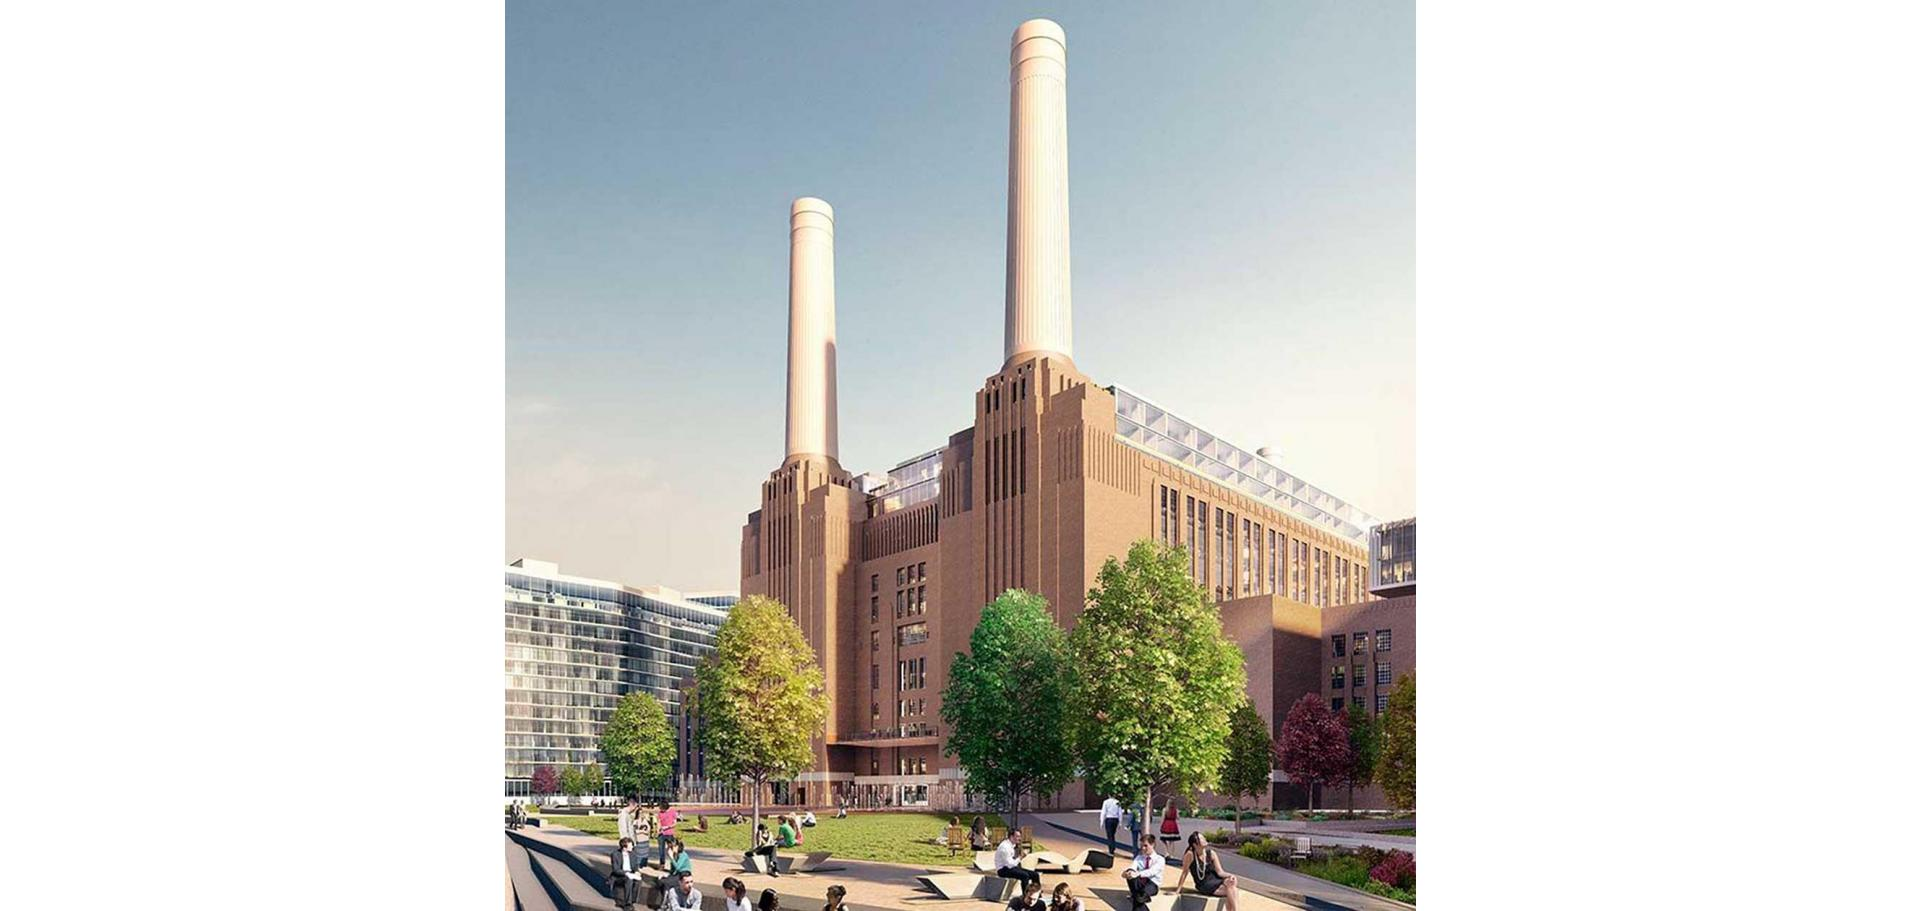 BATTERSEA POWER STATION PHASE 1